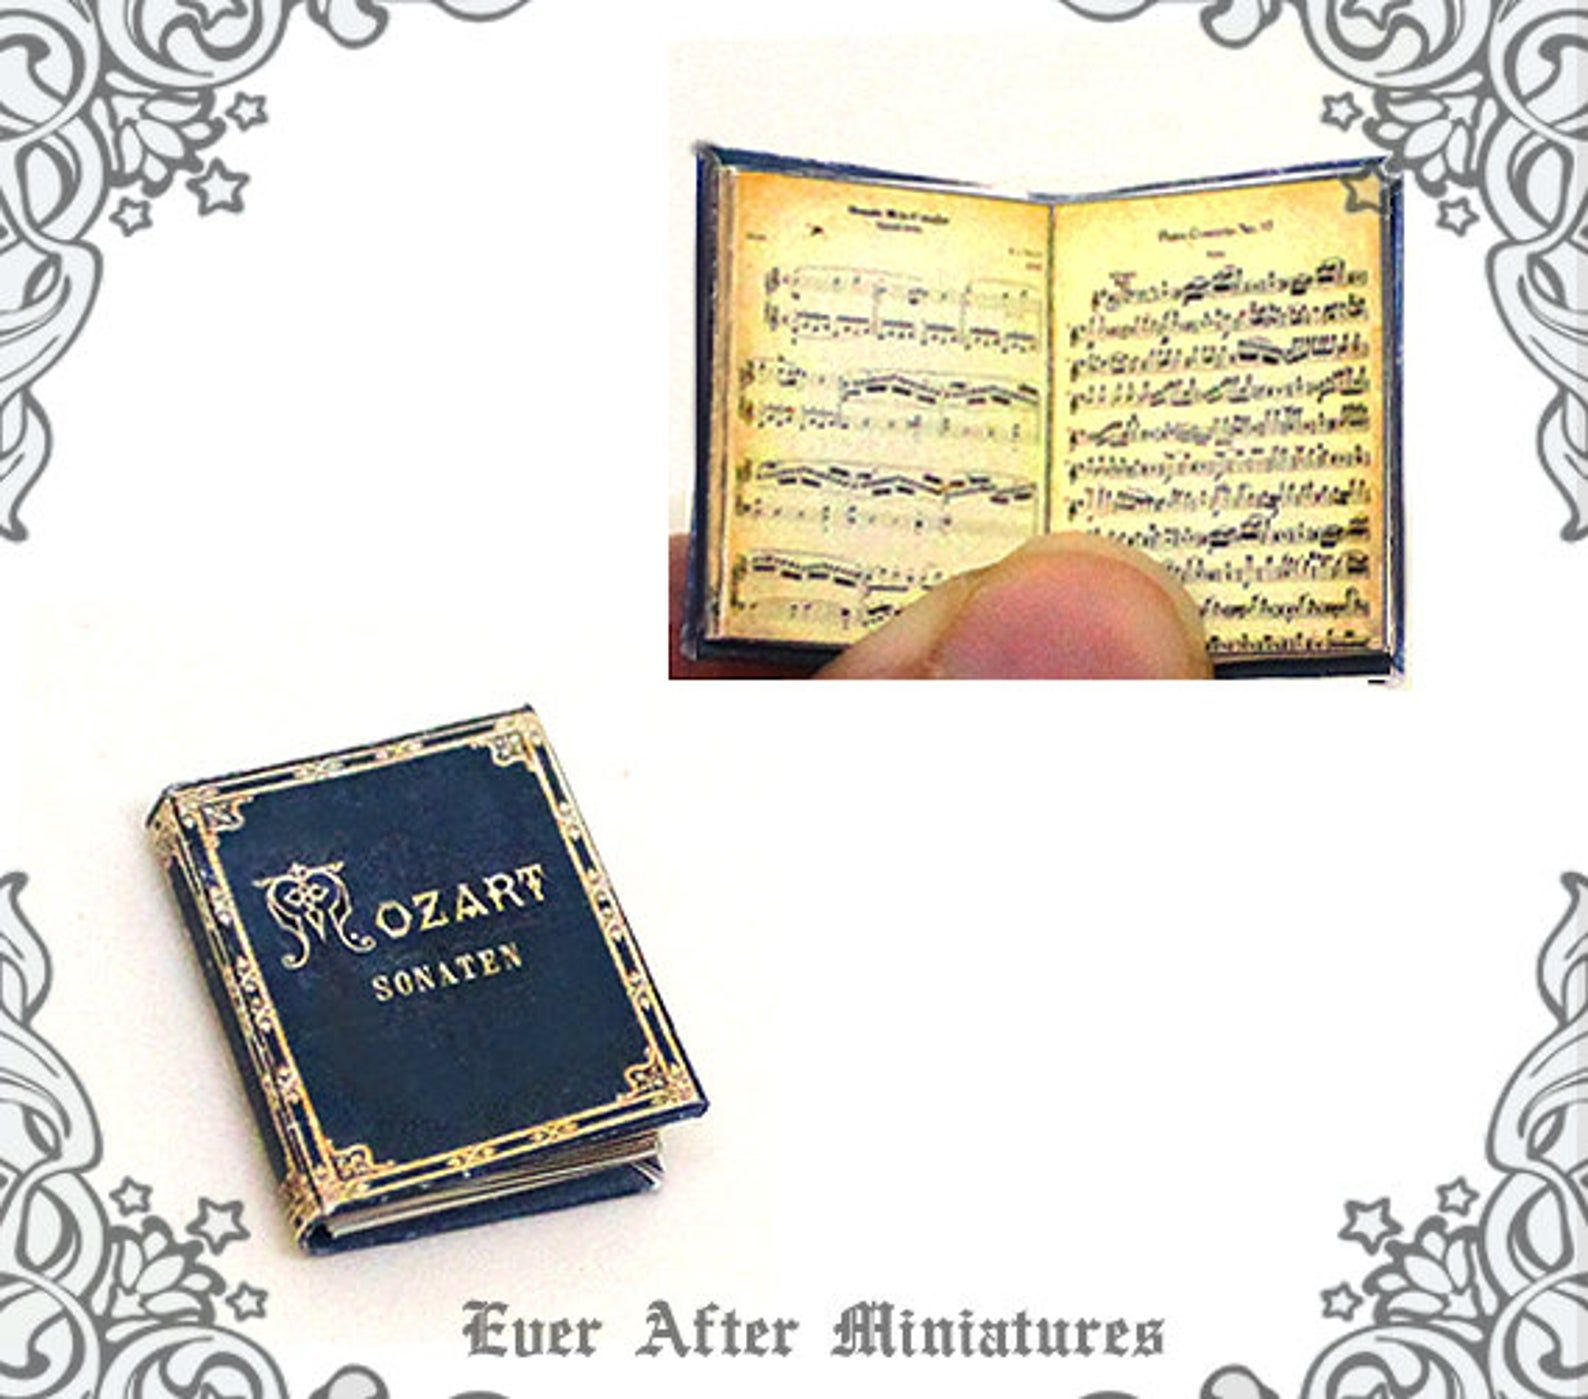 MOZART Music Sheet Dollhouse Miniature Book 1:12 Mozart | Etsy